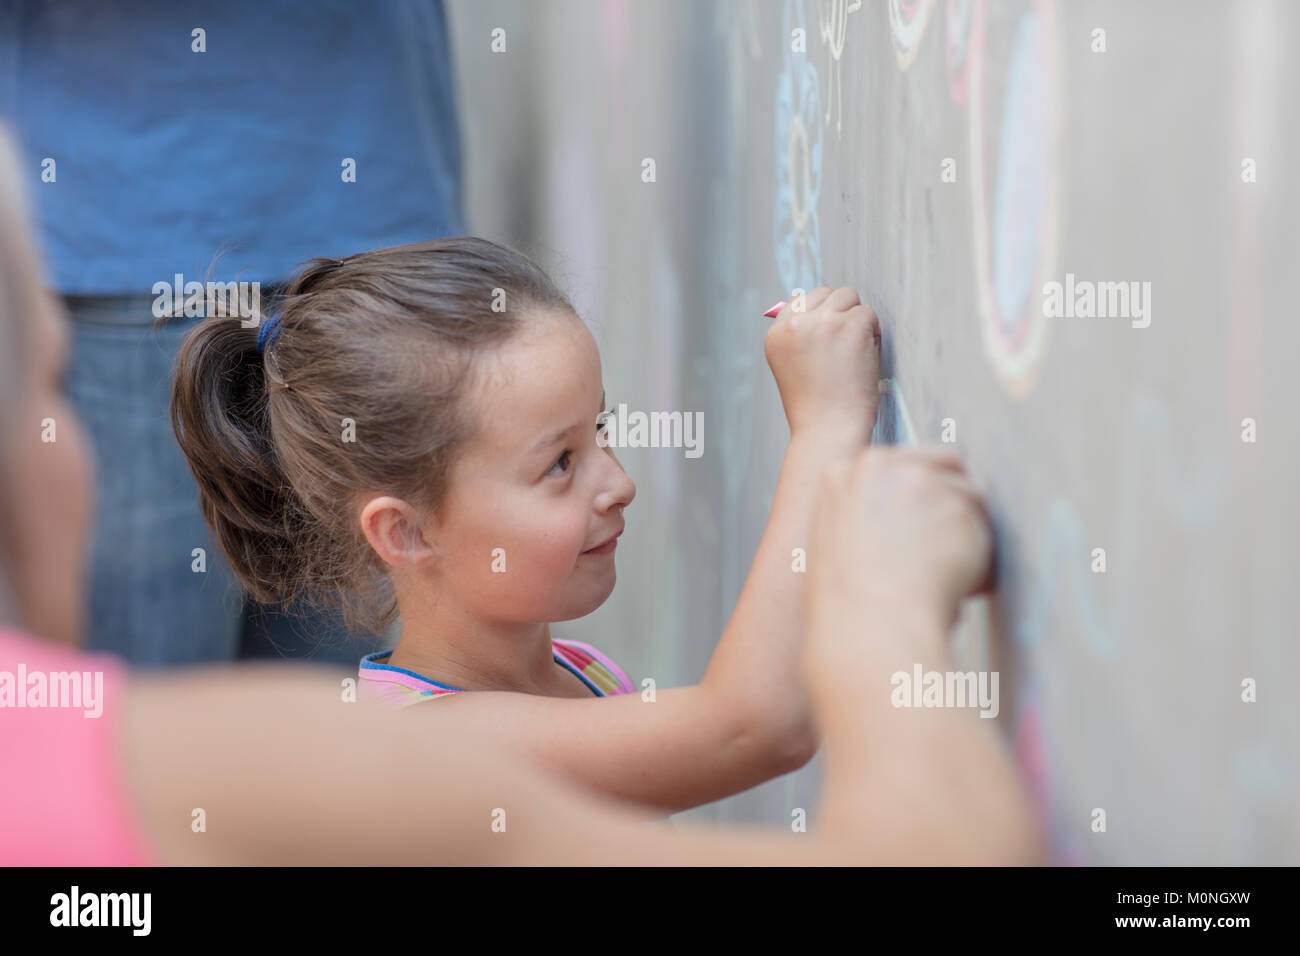 Girl drawing colourful pictures with chalk on a concrete wall - Stock Image